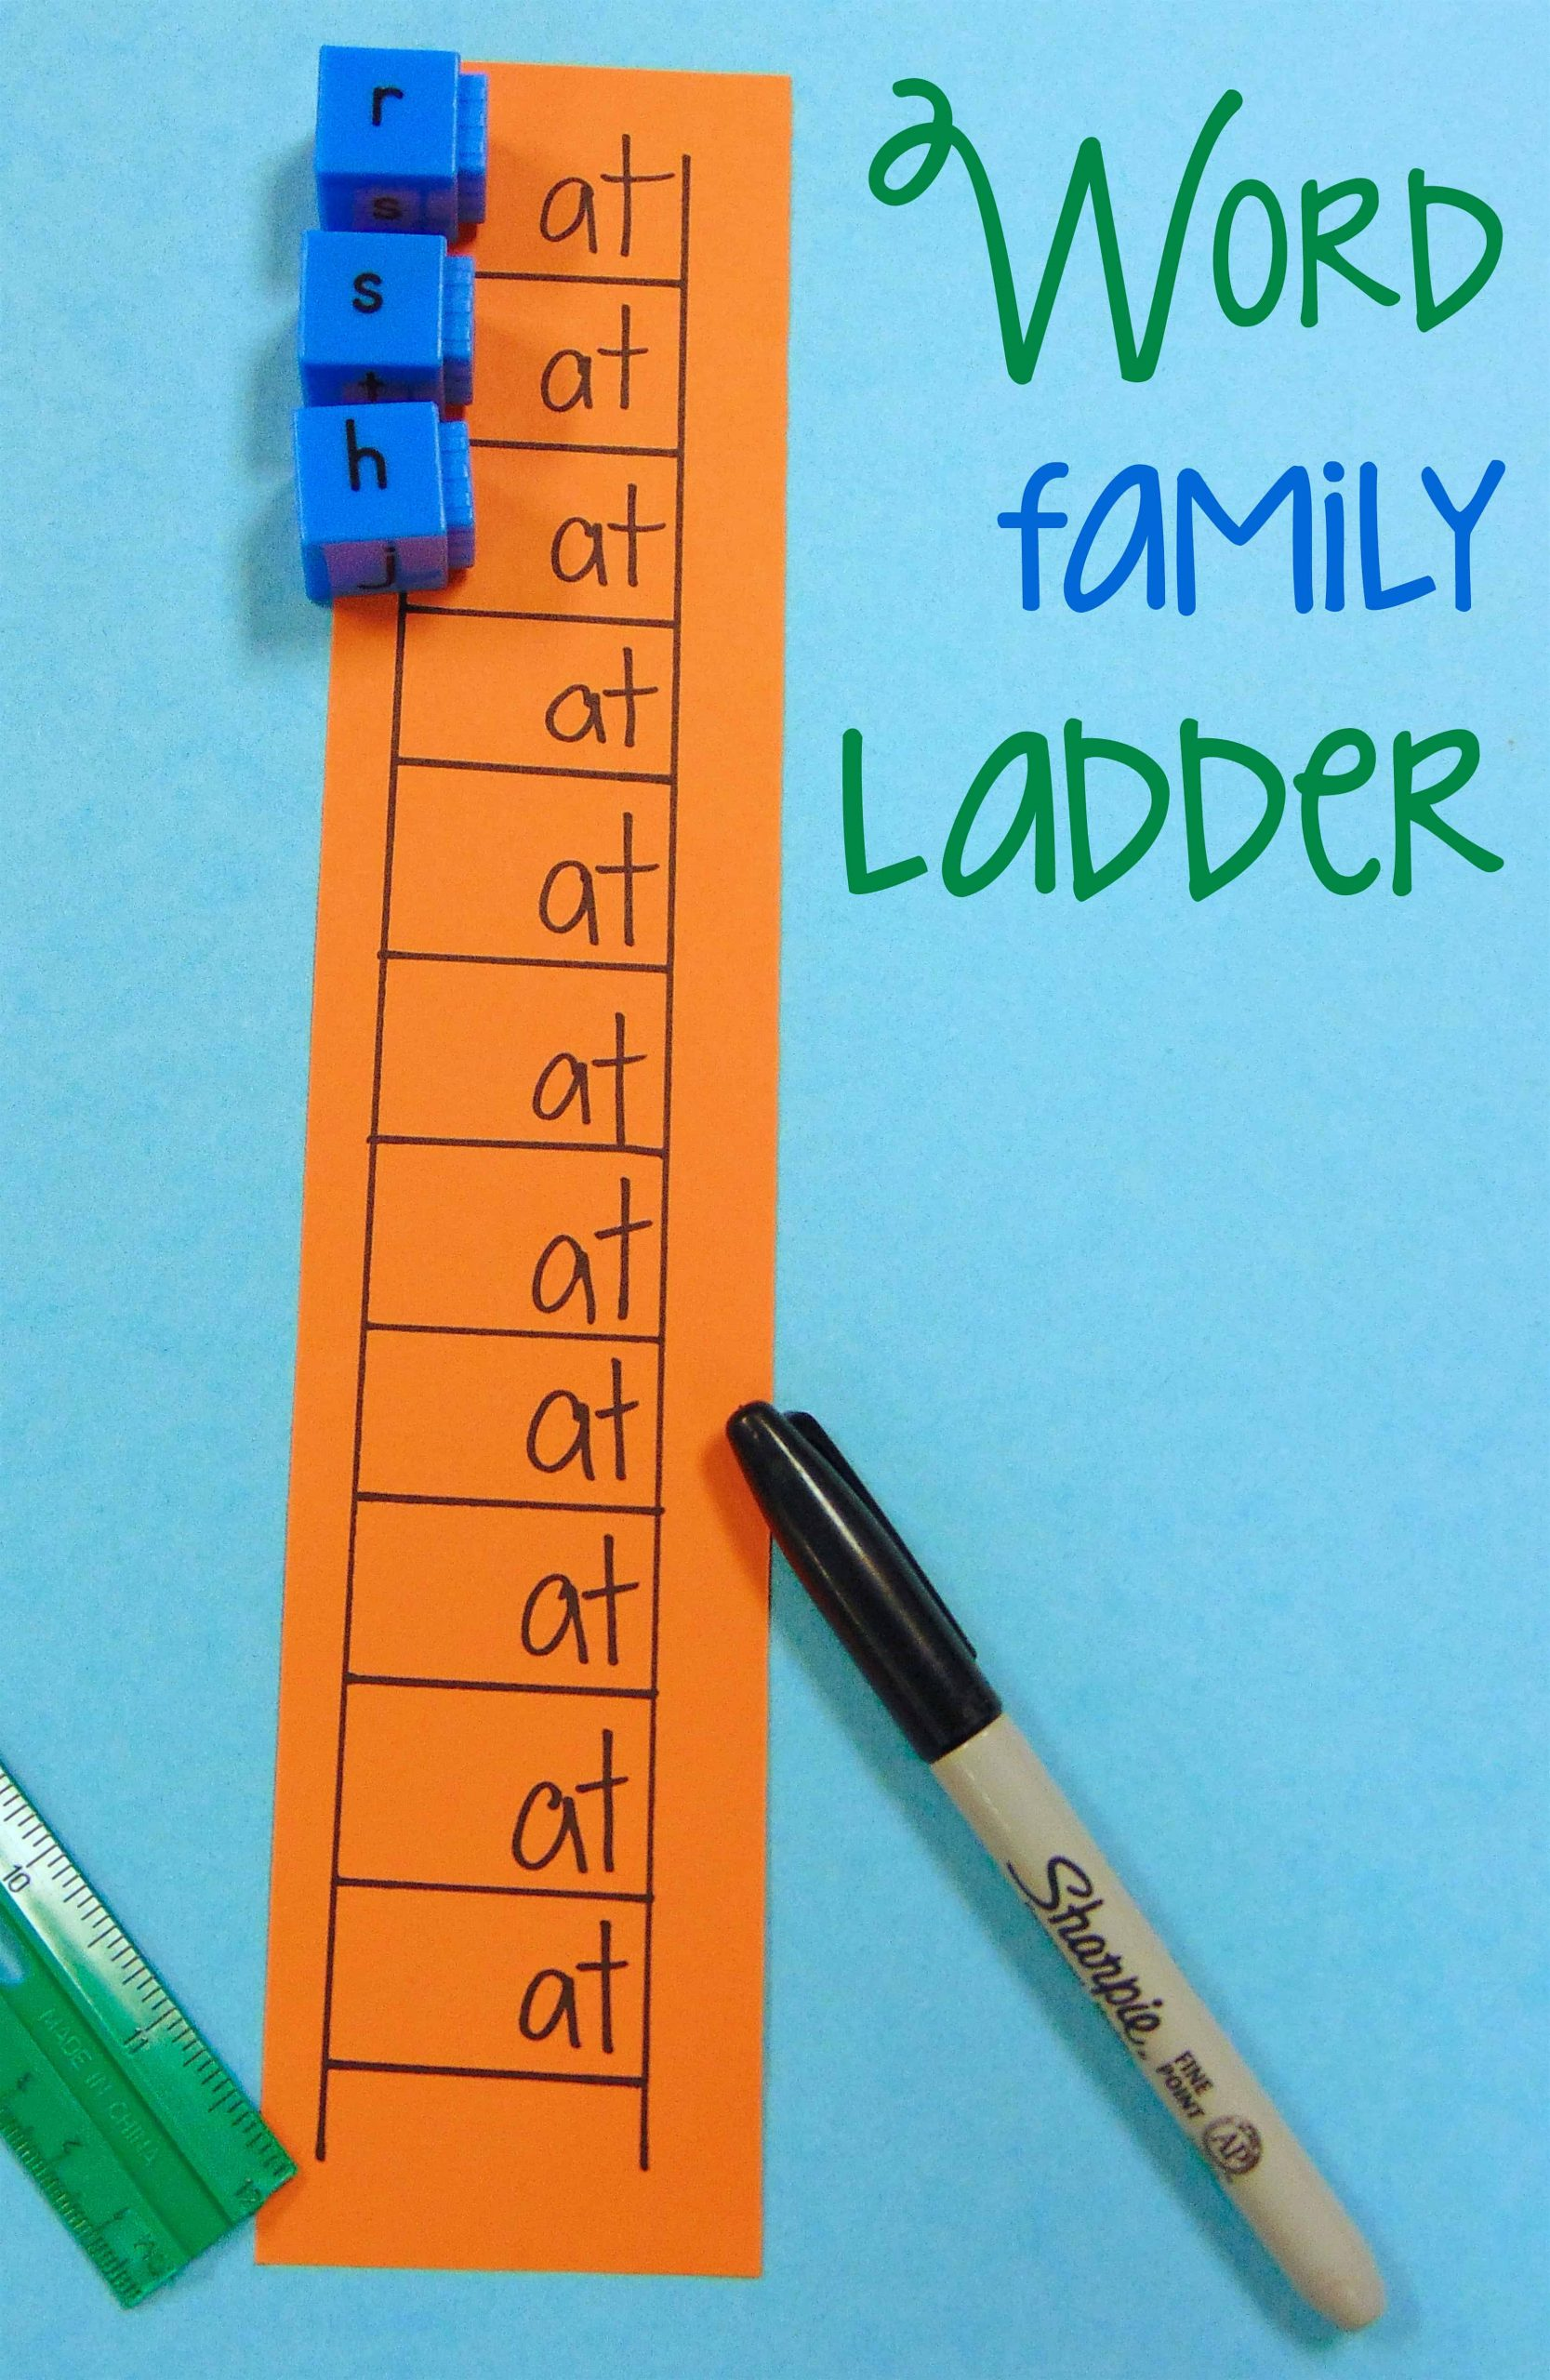 Word Ladders Middle School Diy Word Family Ladder Center Activity Classroom Hack